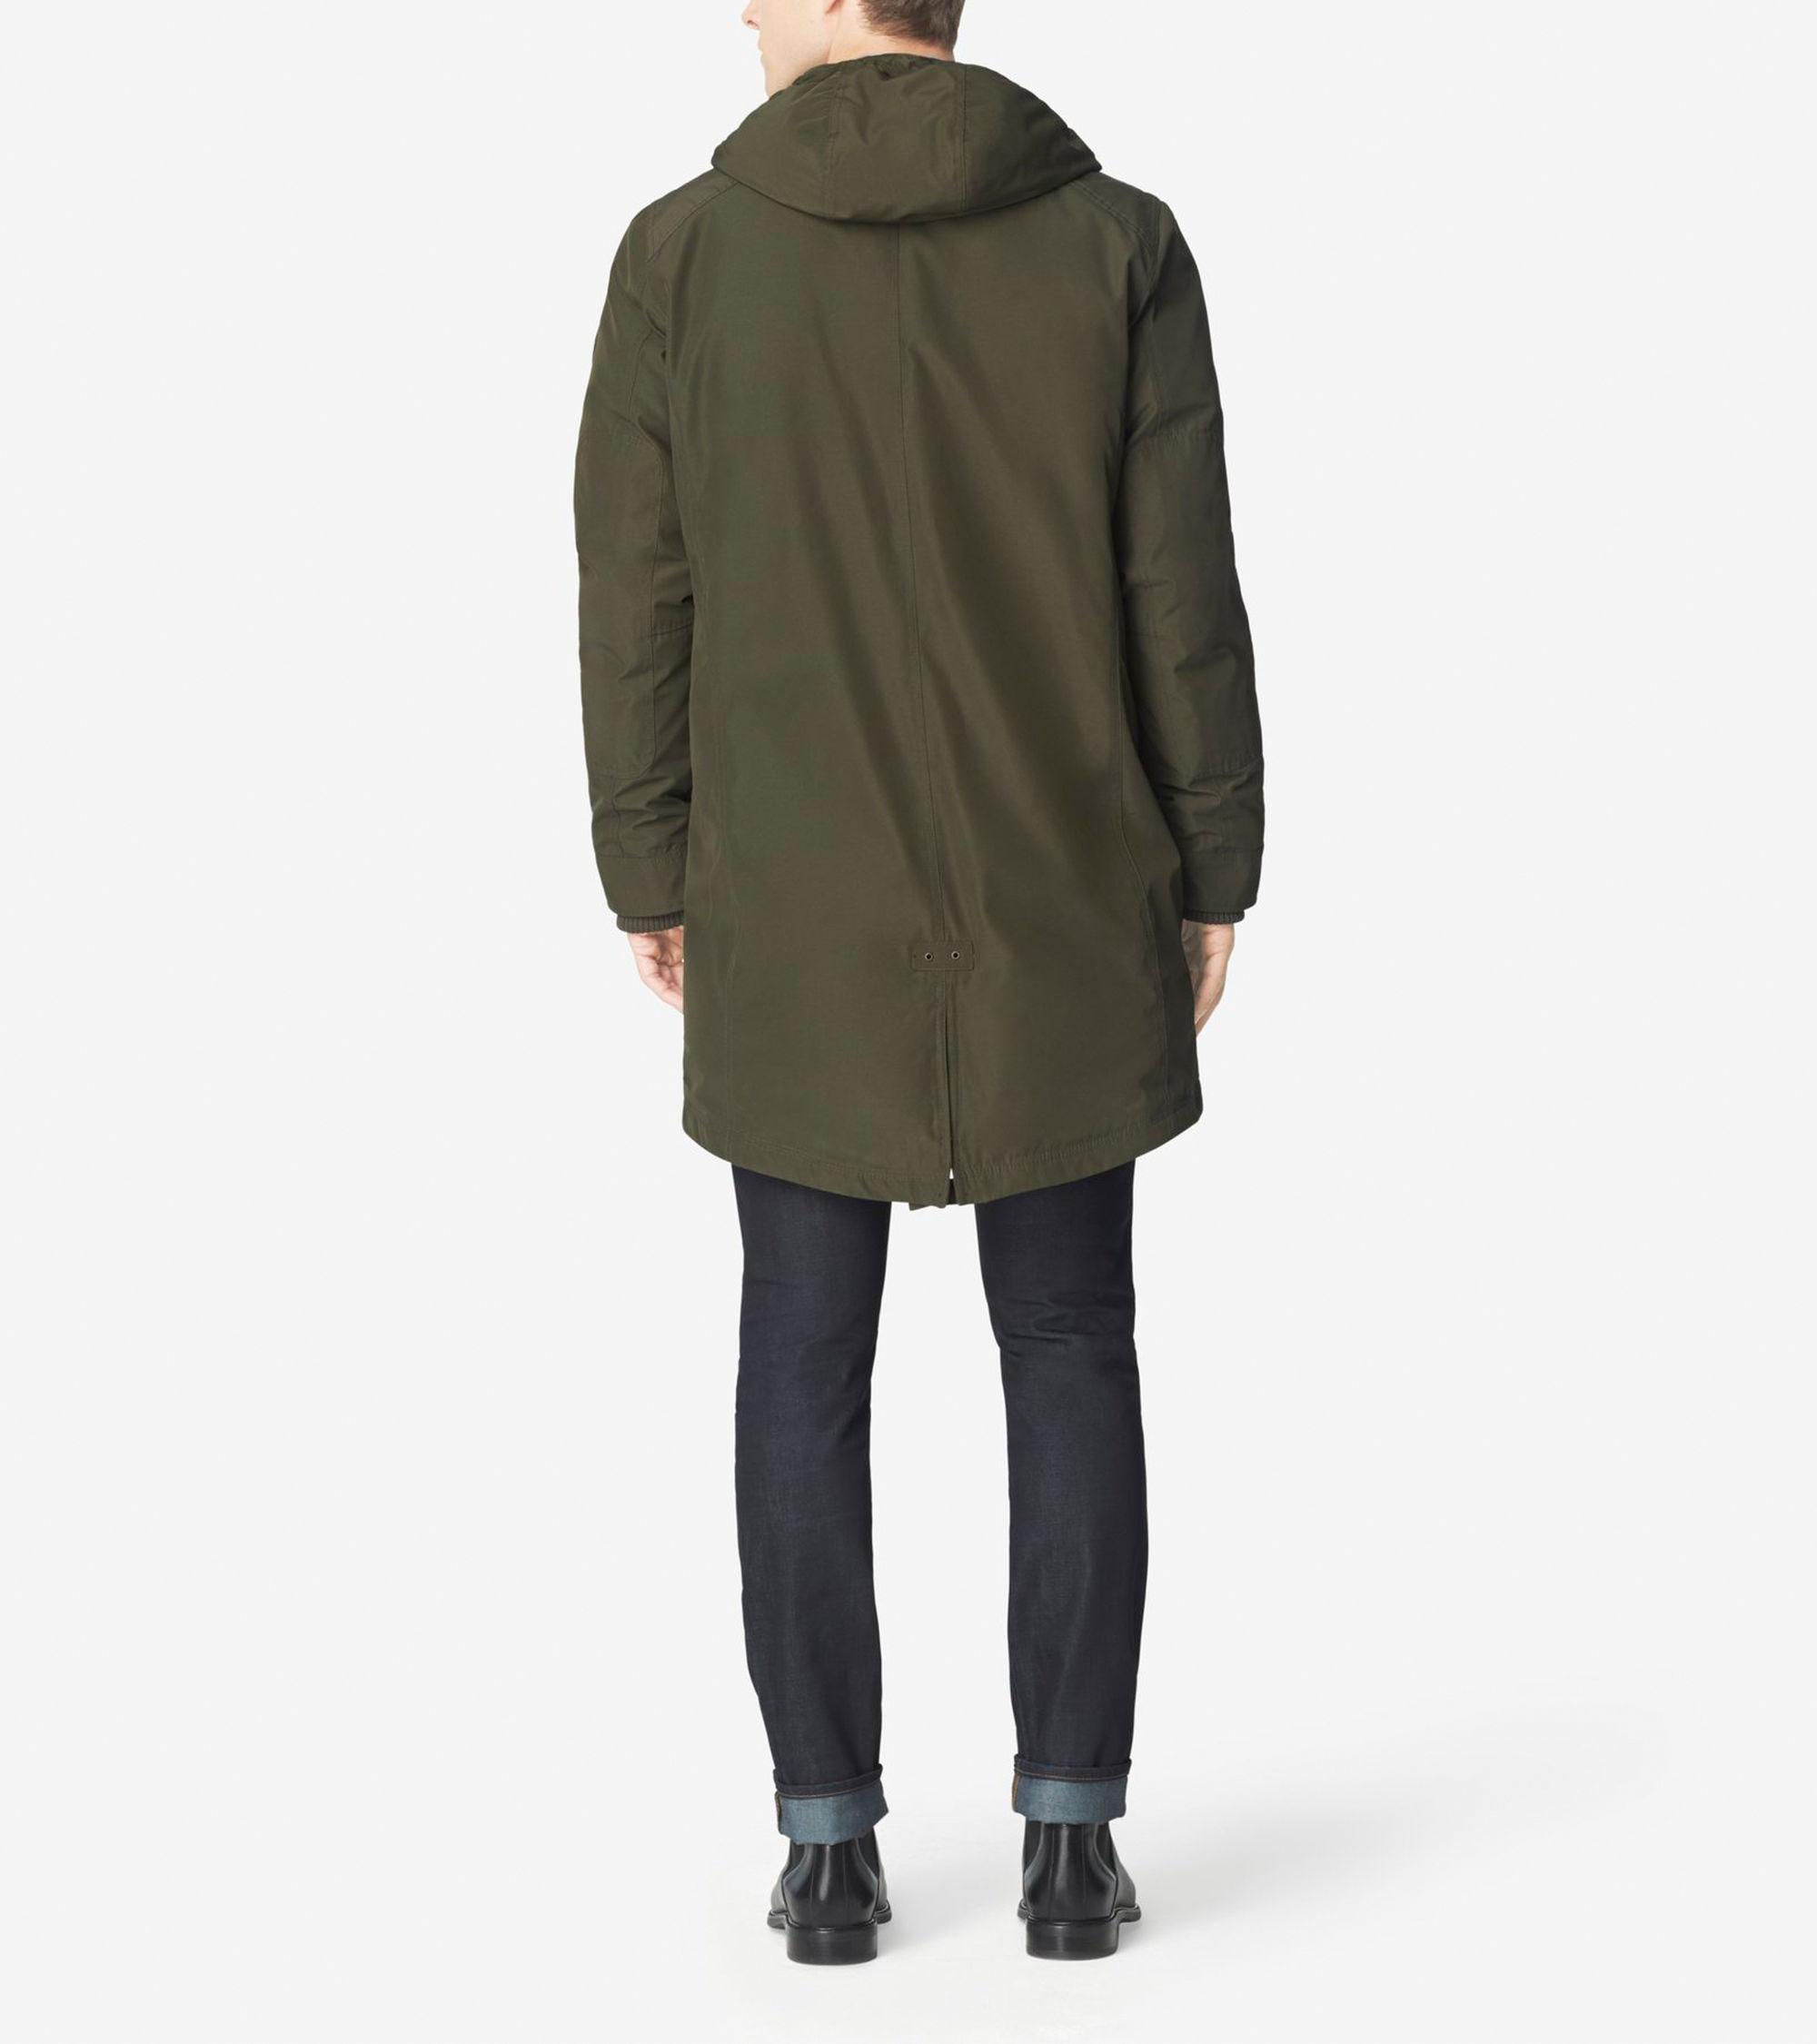 Cole haan Down Military Parka in Blue for Men